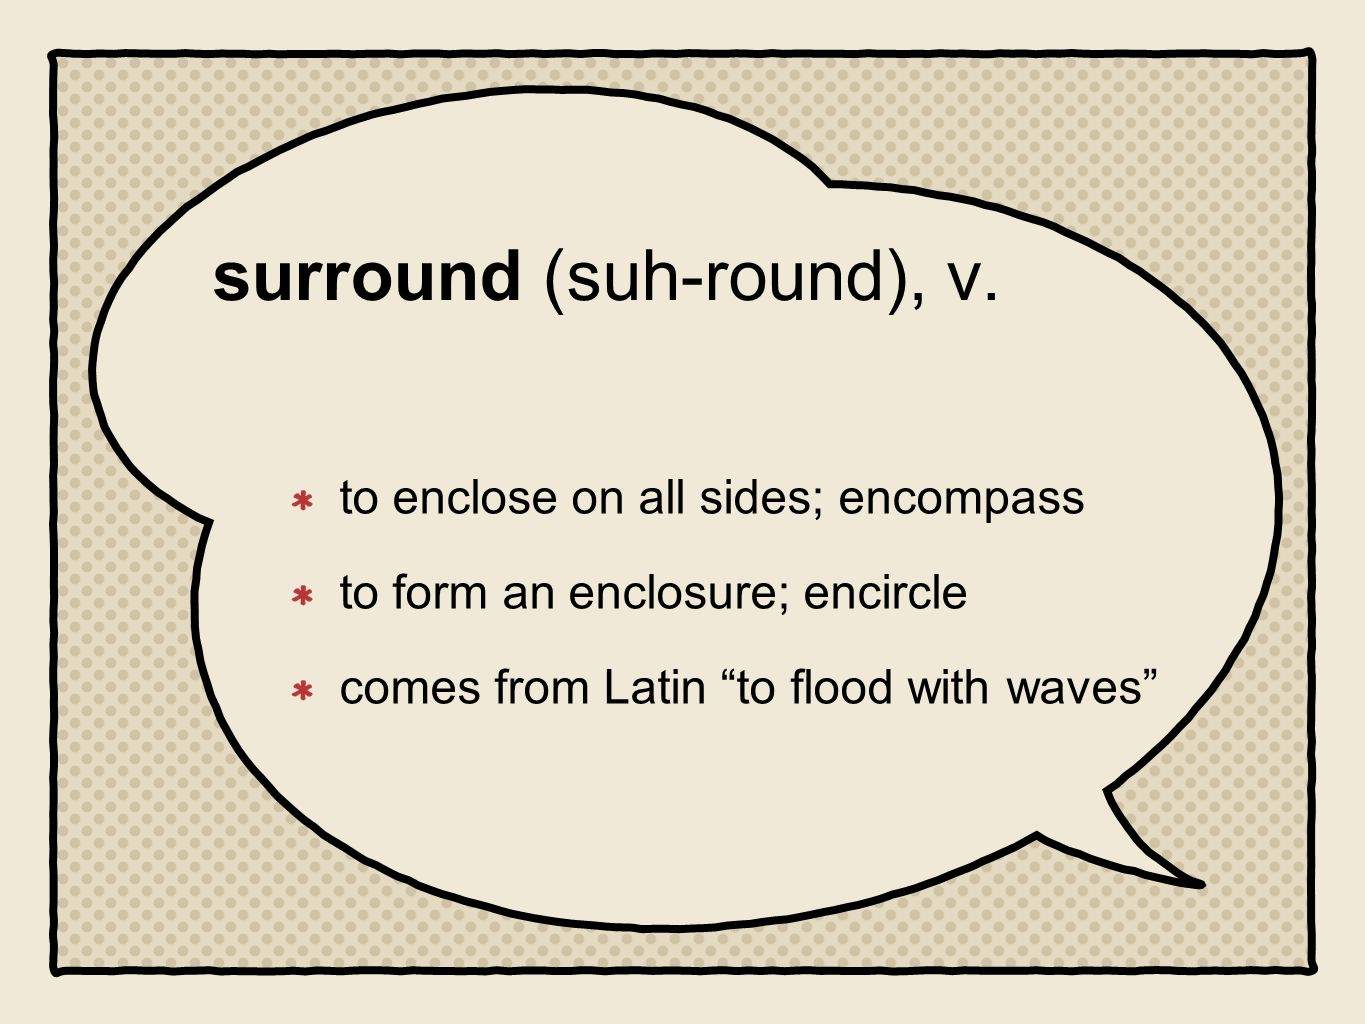 surround (suh-round), v. to enclose on all sides; encompass to form an enclosure; encircle comes from Latin to flood with waves